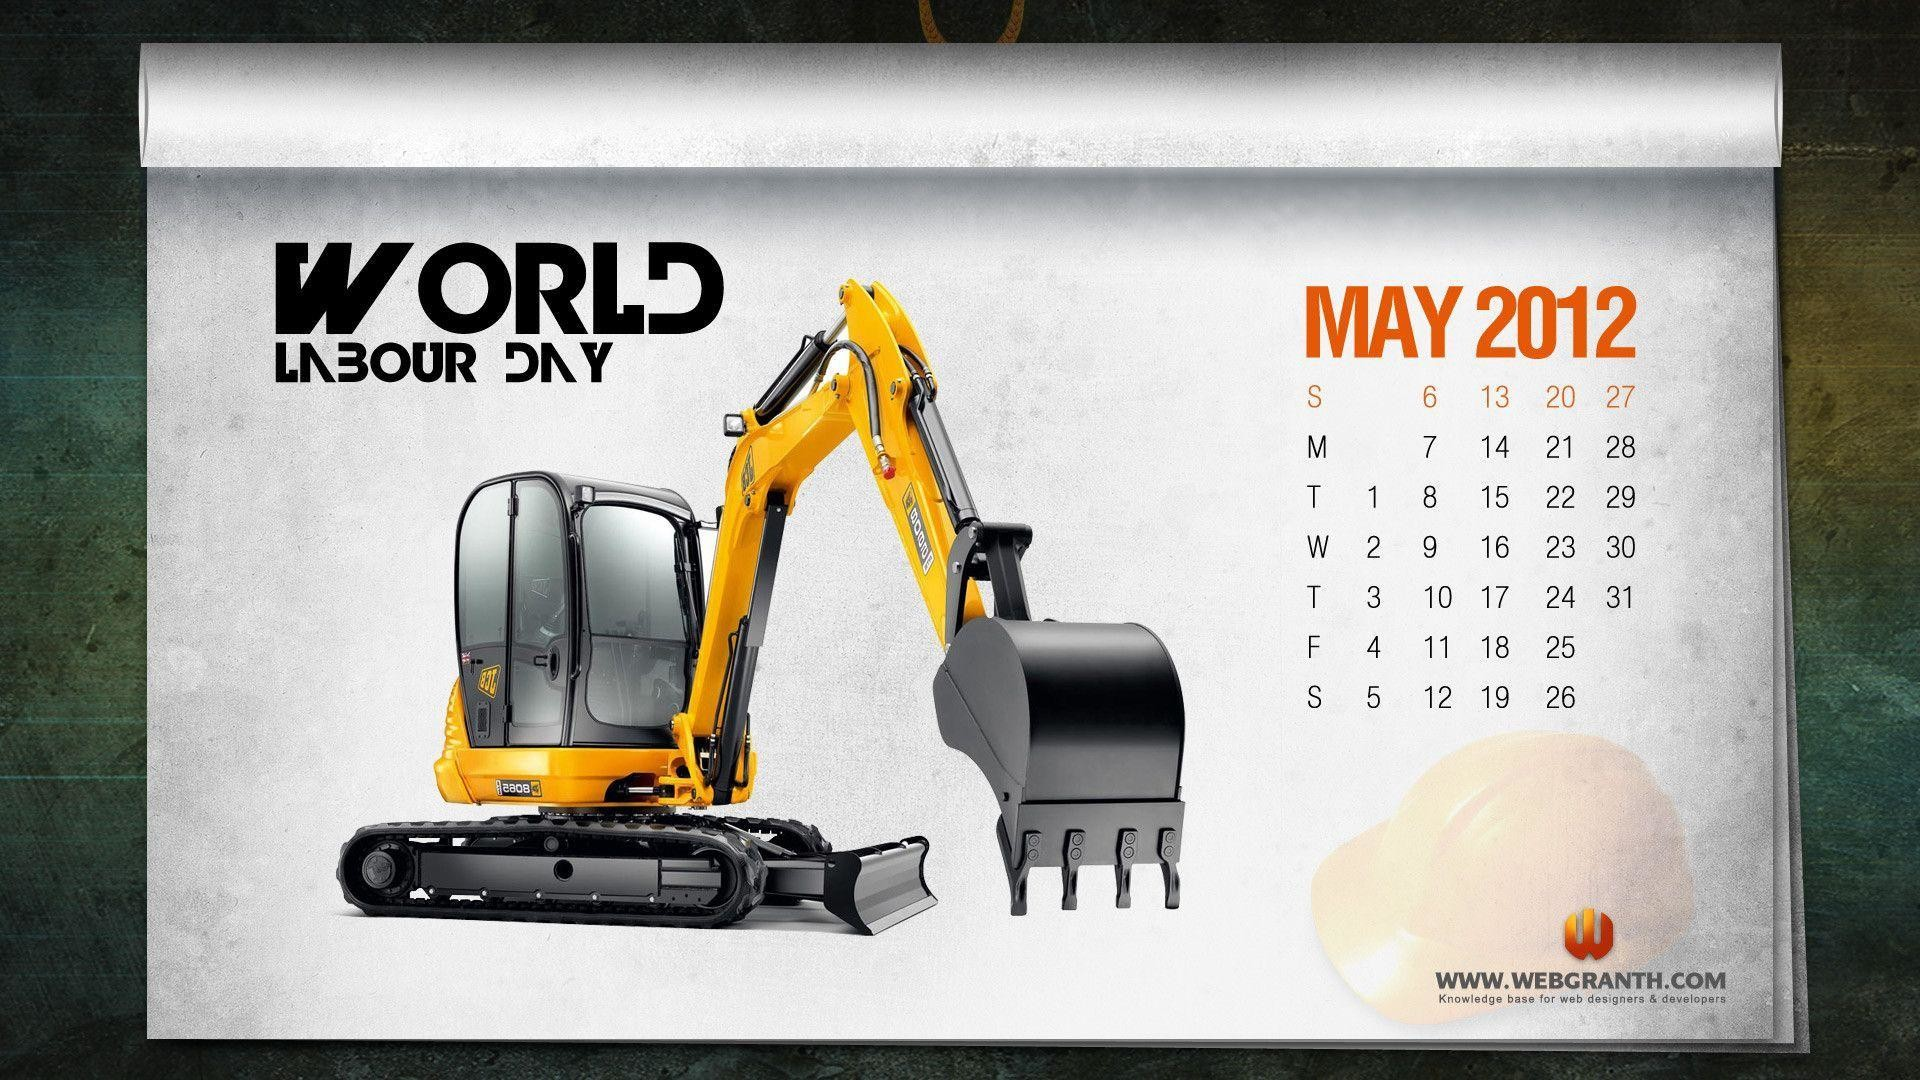 1920x1080 Download Free World Labor Day Calendar Wallpaper – Webgranth 2014